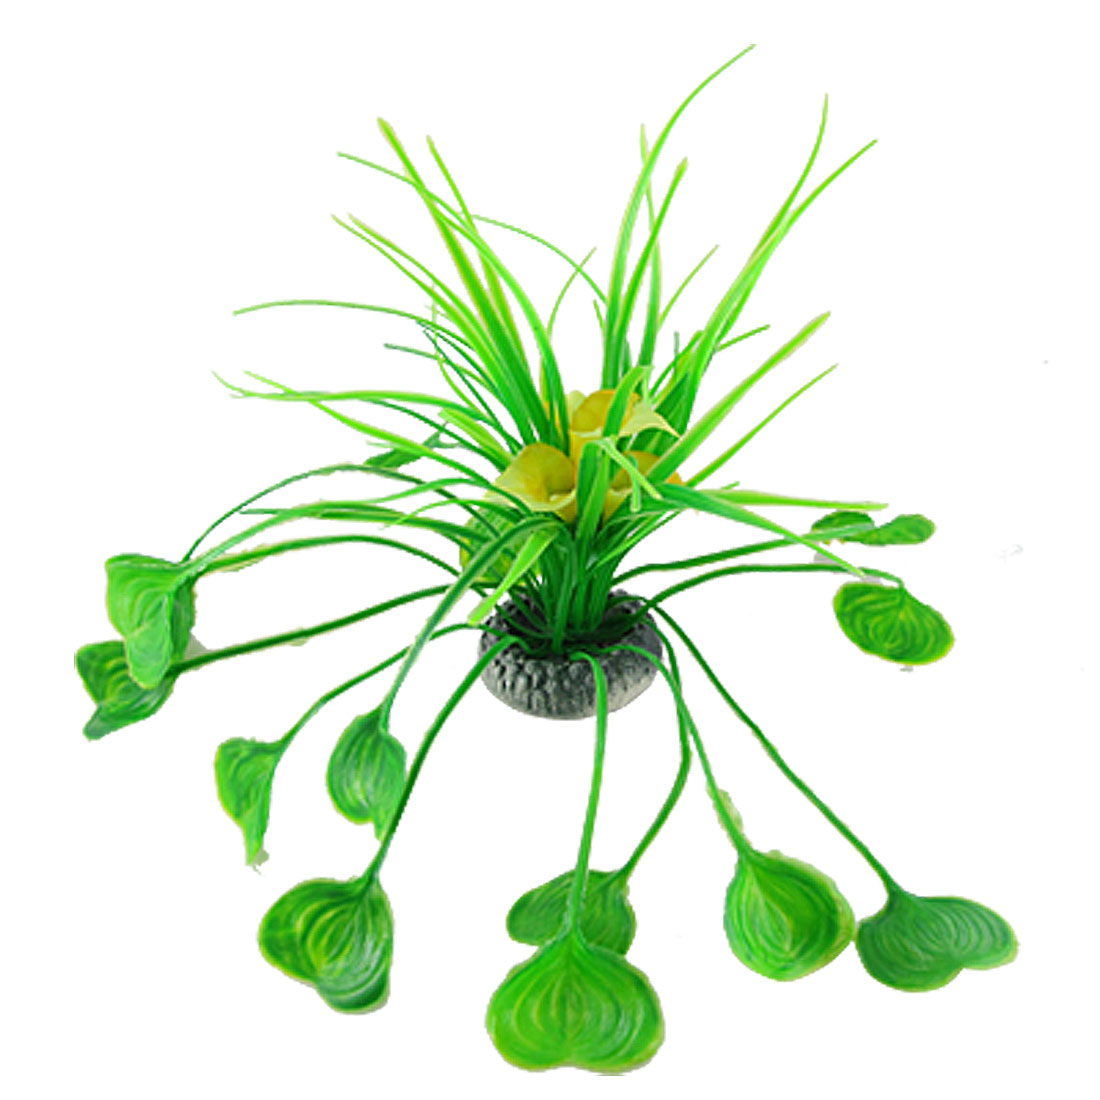 Fish Tank Artificial Green Leaves Yellow Flower Plants Ornament